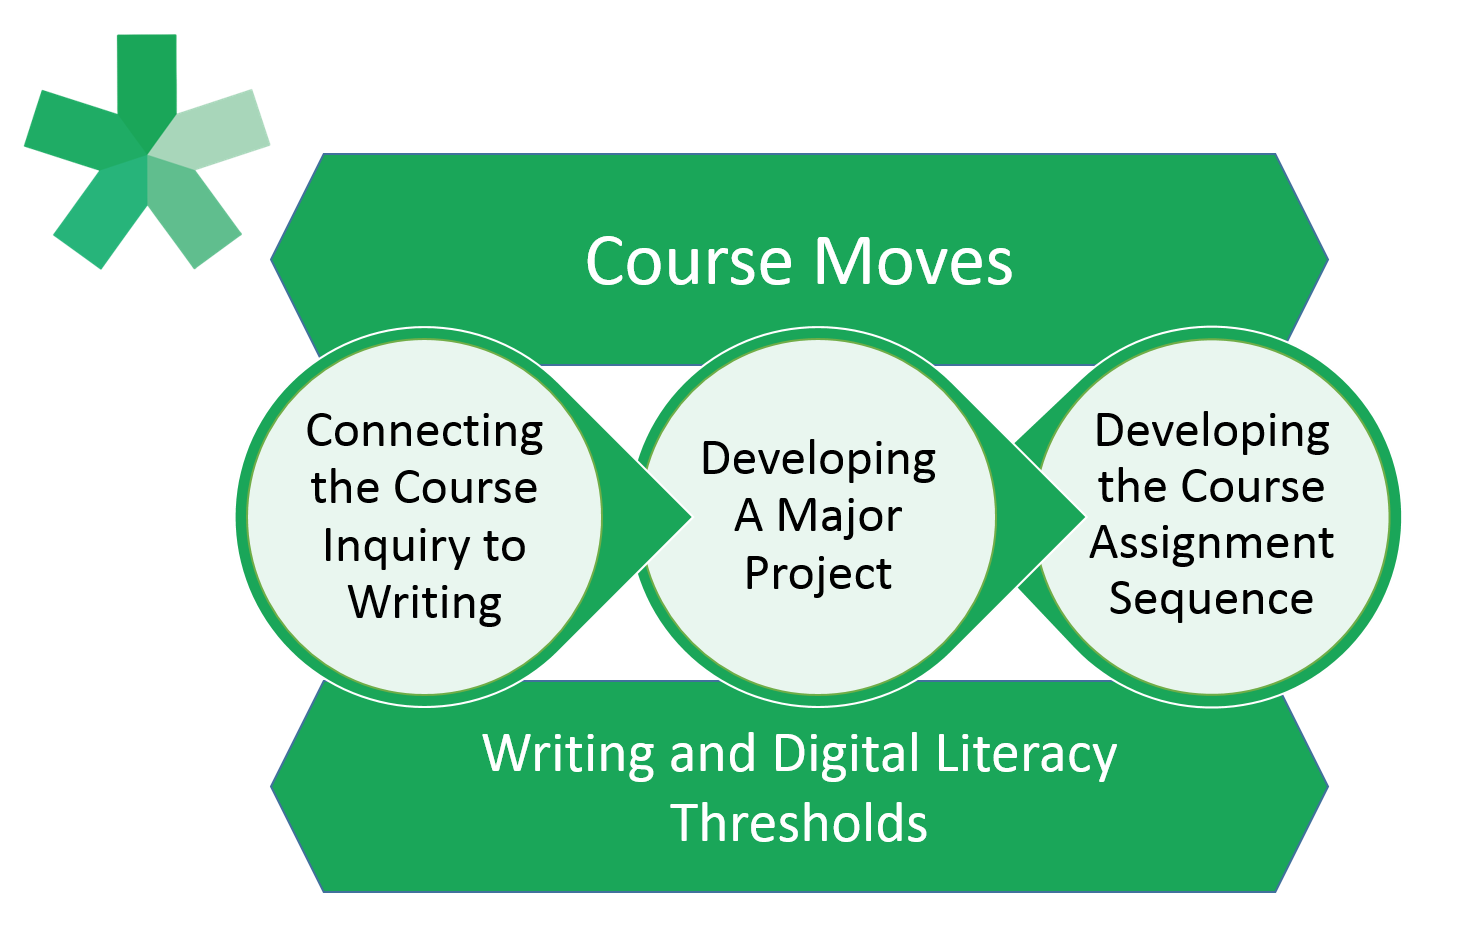 A graphic depicting the process for designing a course, beginning with connecting the course inquiry to writing, then developing a major project, and finally developing the course assignment sequence. All steps are connected by course moves and by writing and digital literacy thresholds.